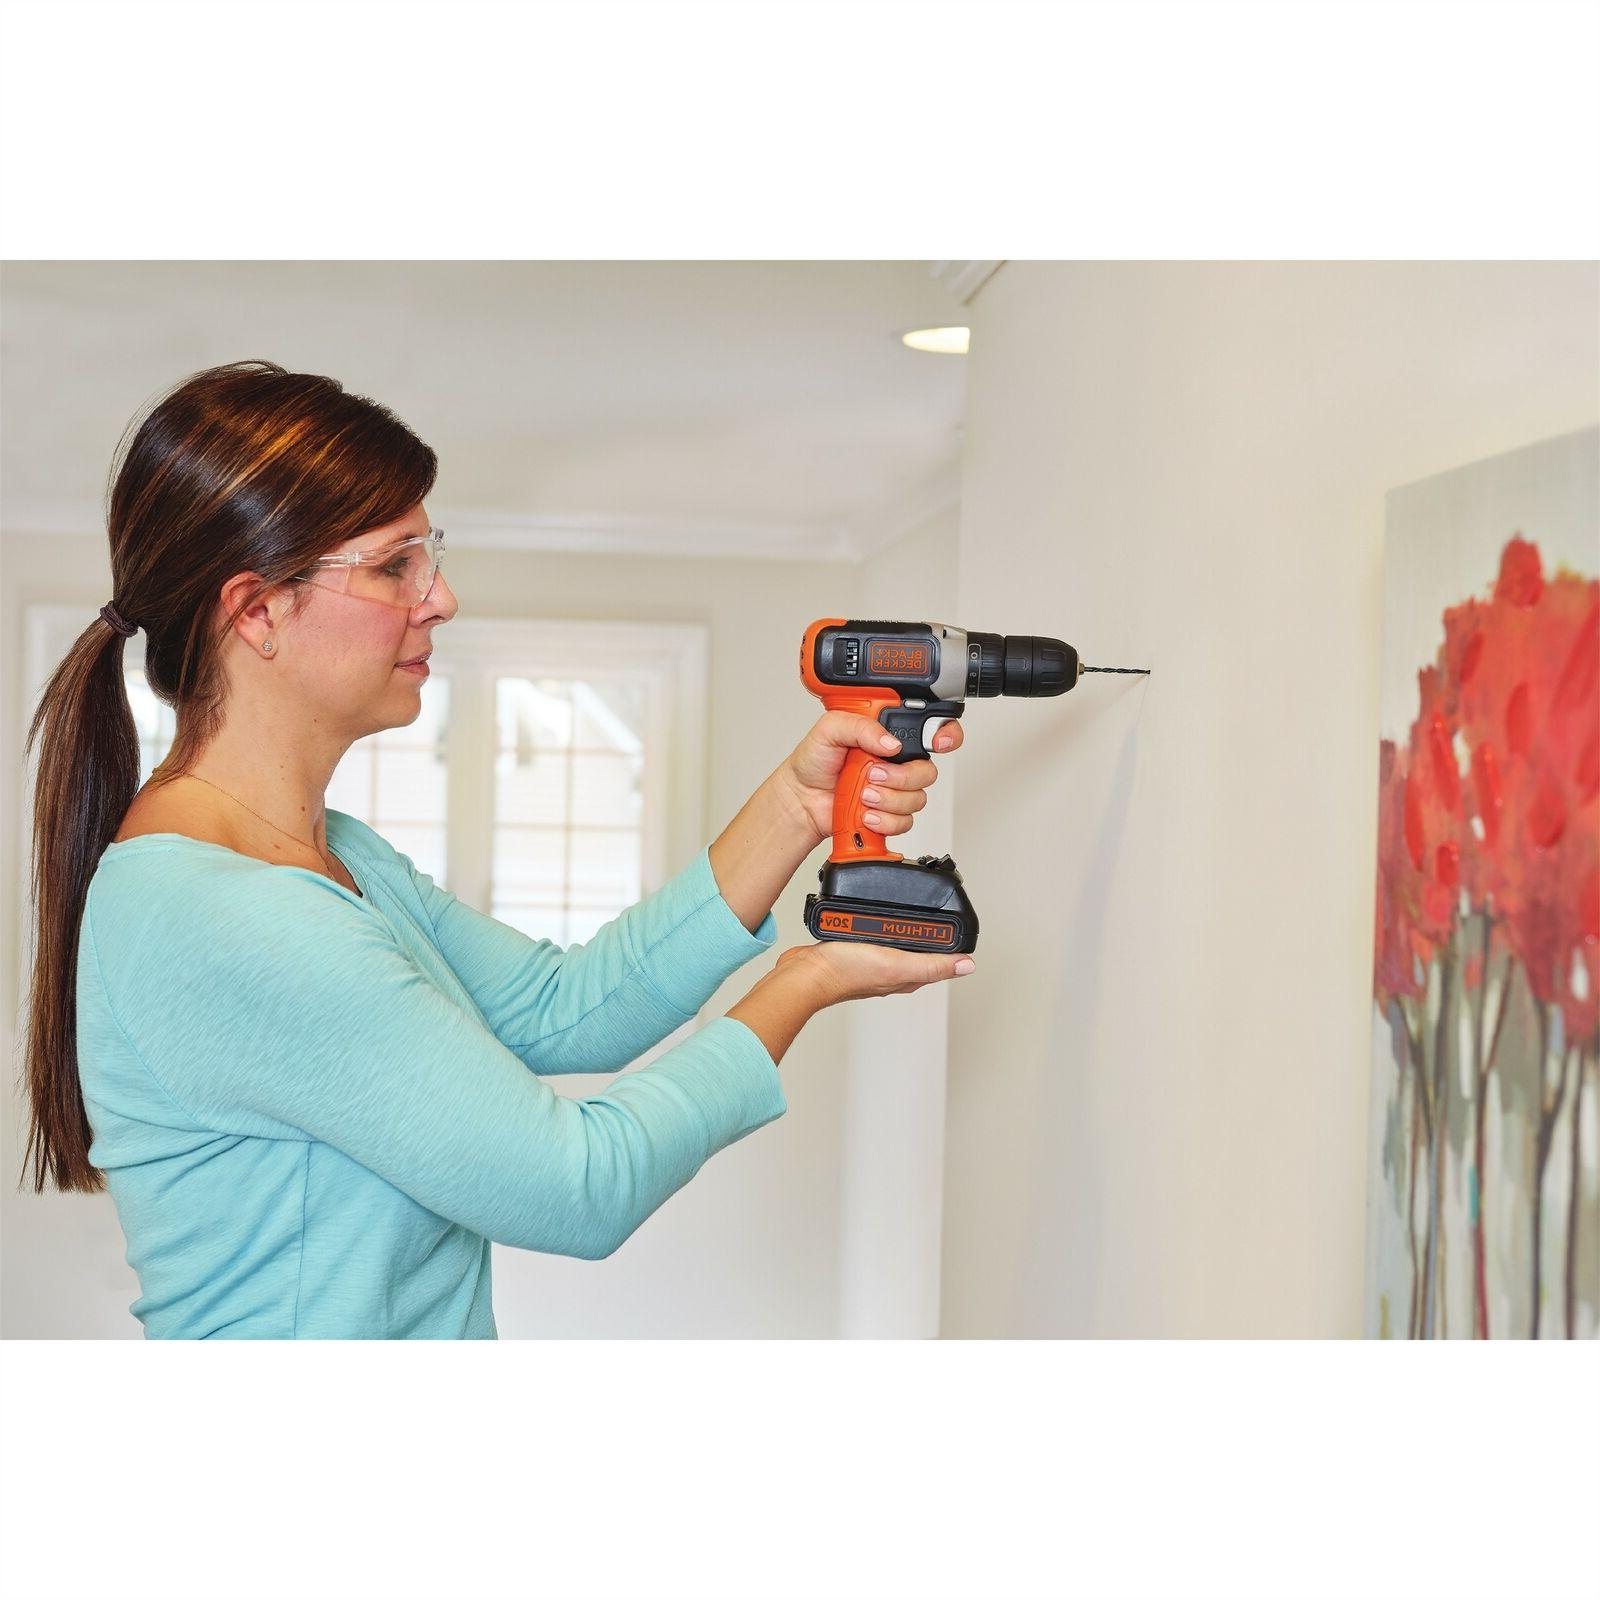 BLACK+DECKER 20-Volt Cordless Drill With Batteries BCD702C2BWM